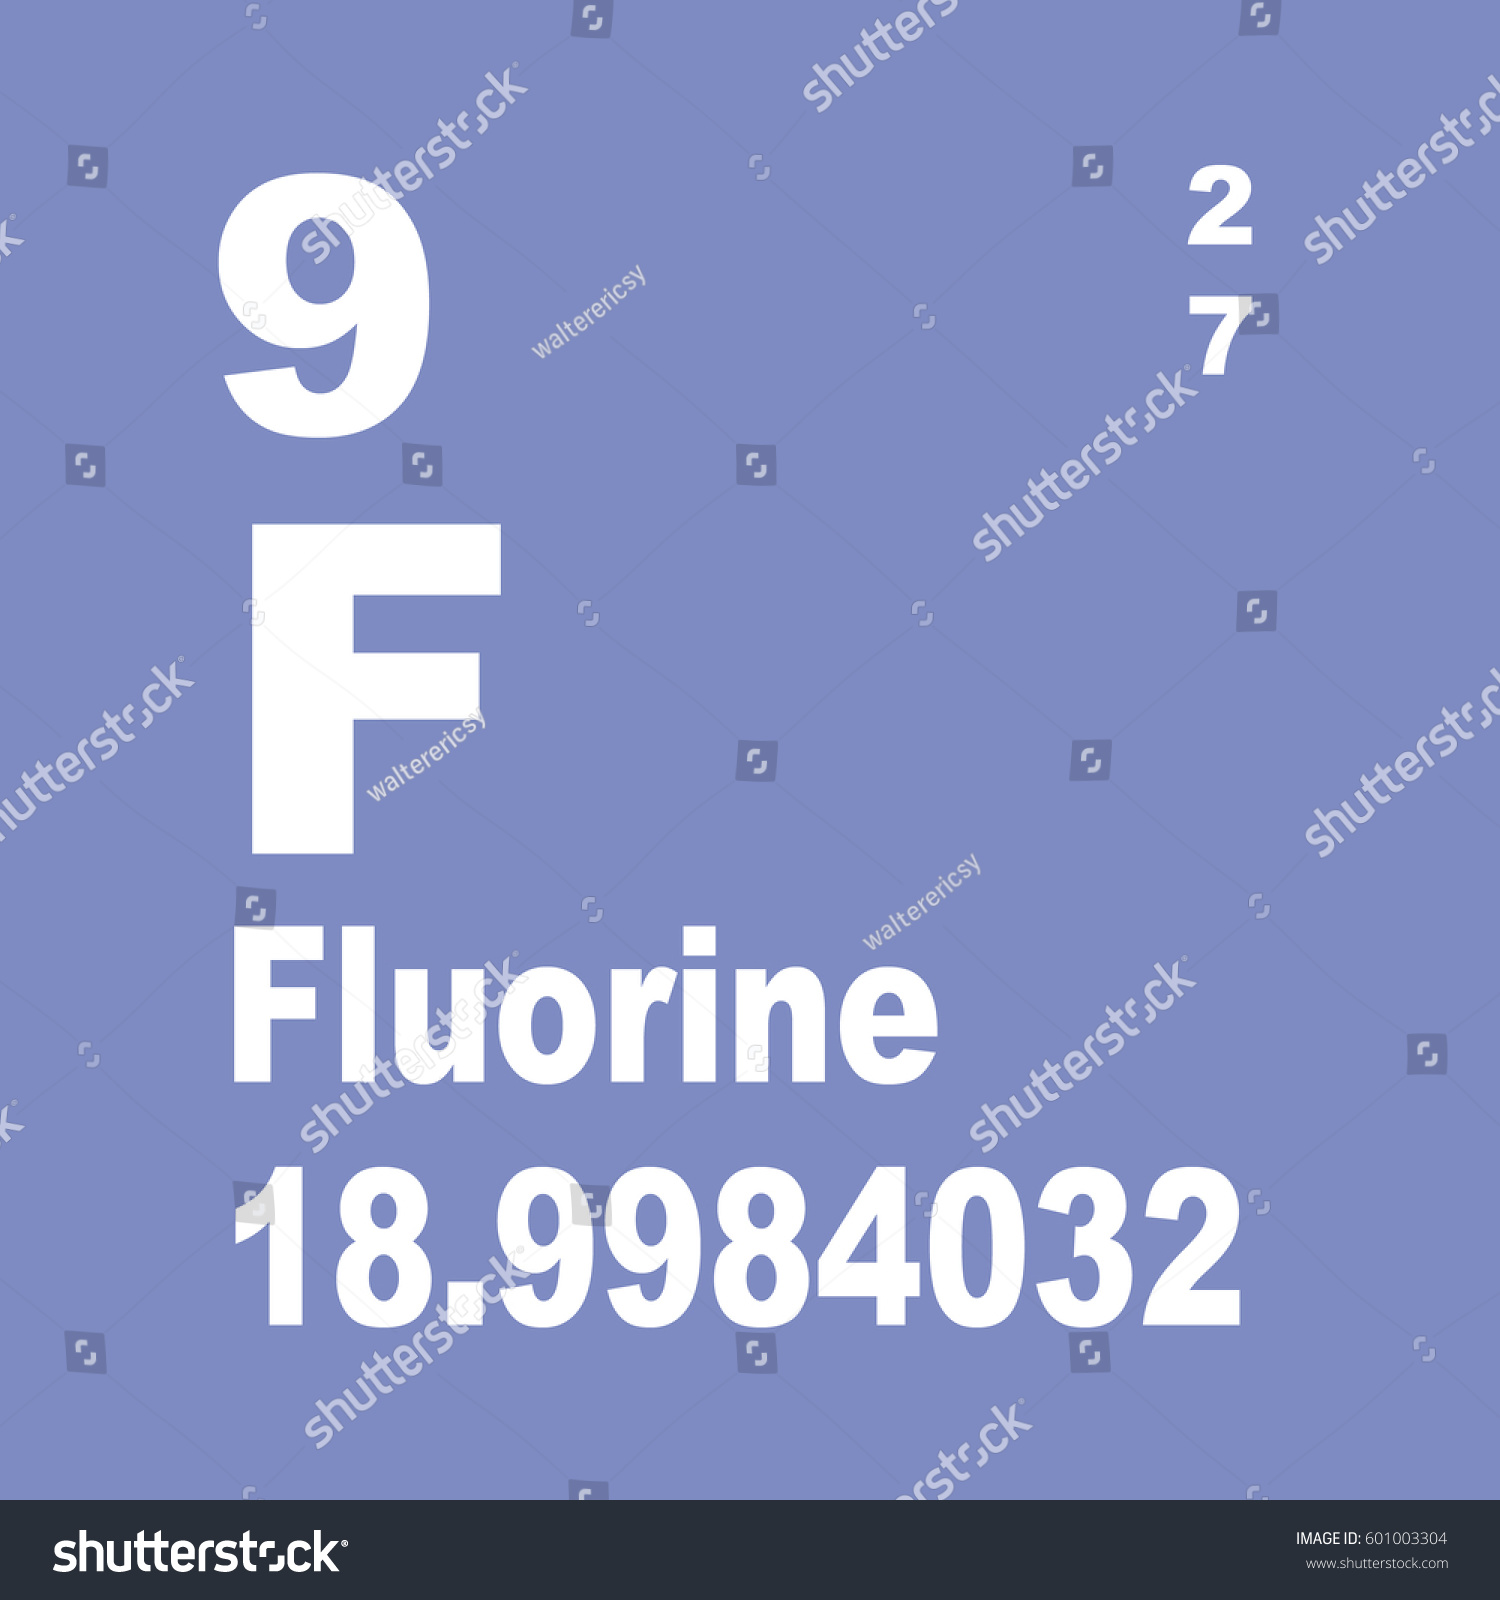 Fluorine periodic table elements stock illustration 601003304 fluorine periodic table of elements gamestrikefo Choice Image